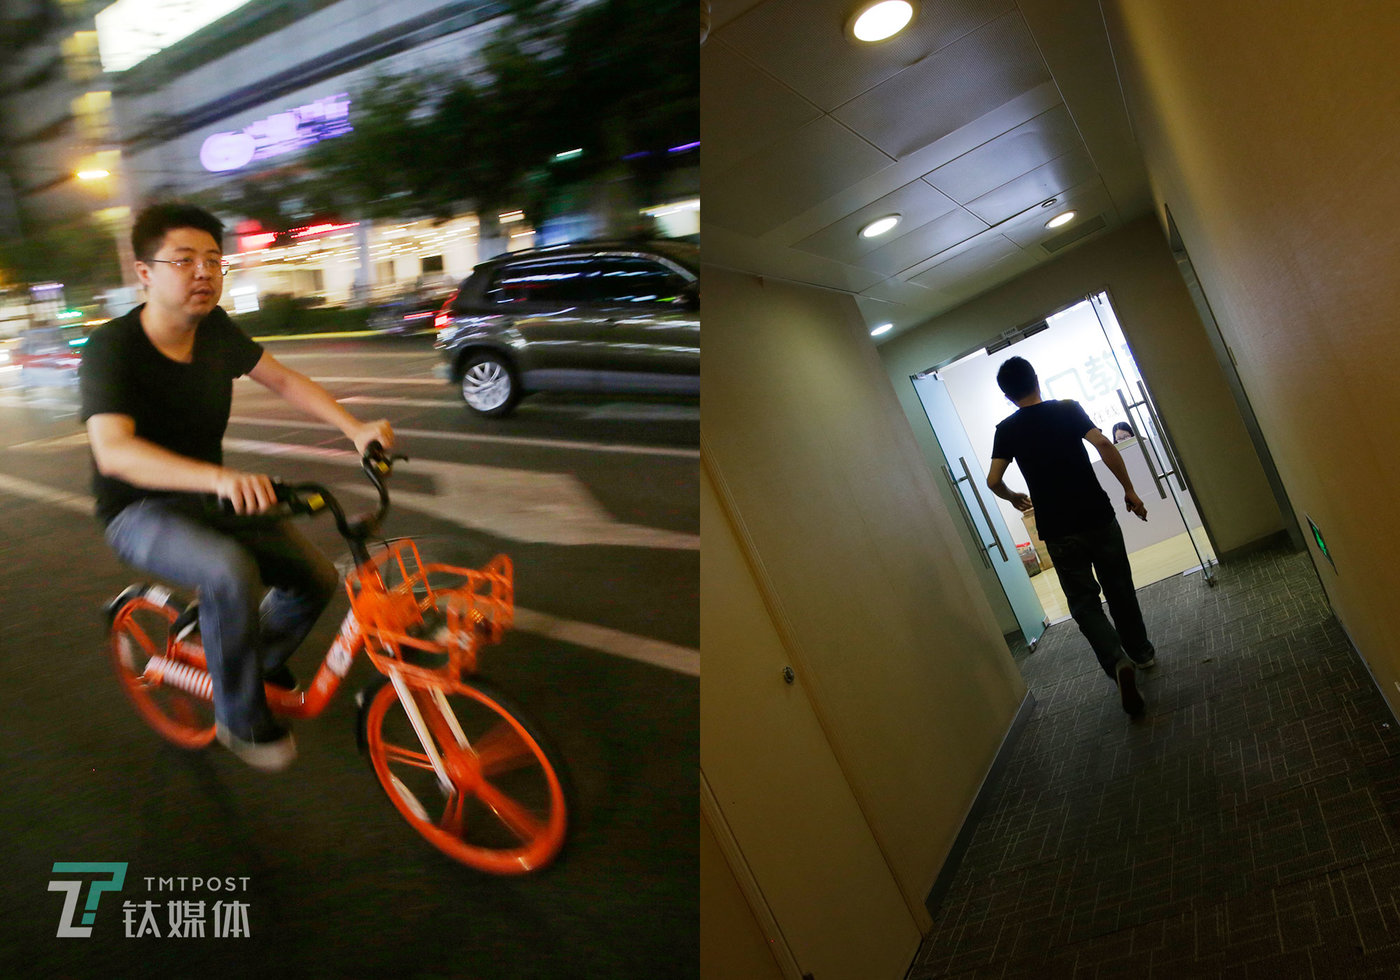 6:30 pm on September 19, Shanghai. Hu Lan hurries back to his office for more overtime after dinner downstairs. (left) Two hours later, he rides a bicycle to perform at a stand-up comedy show. (right)